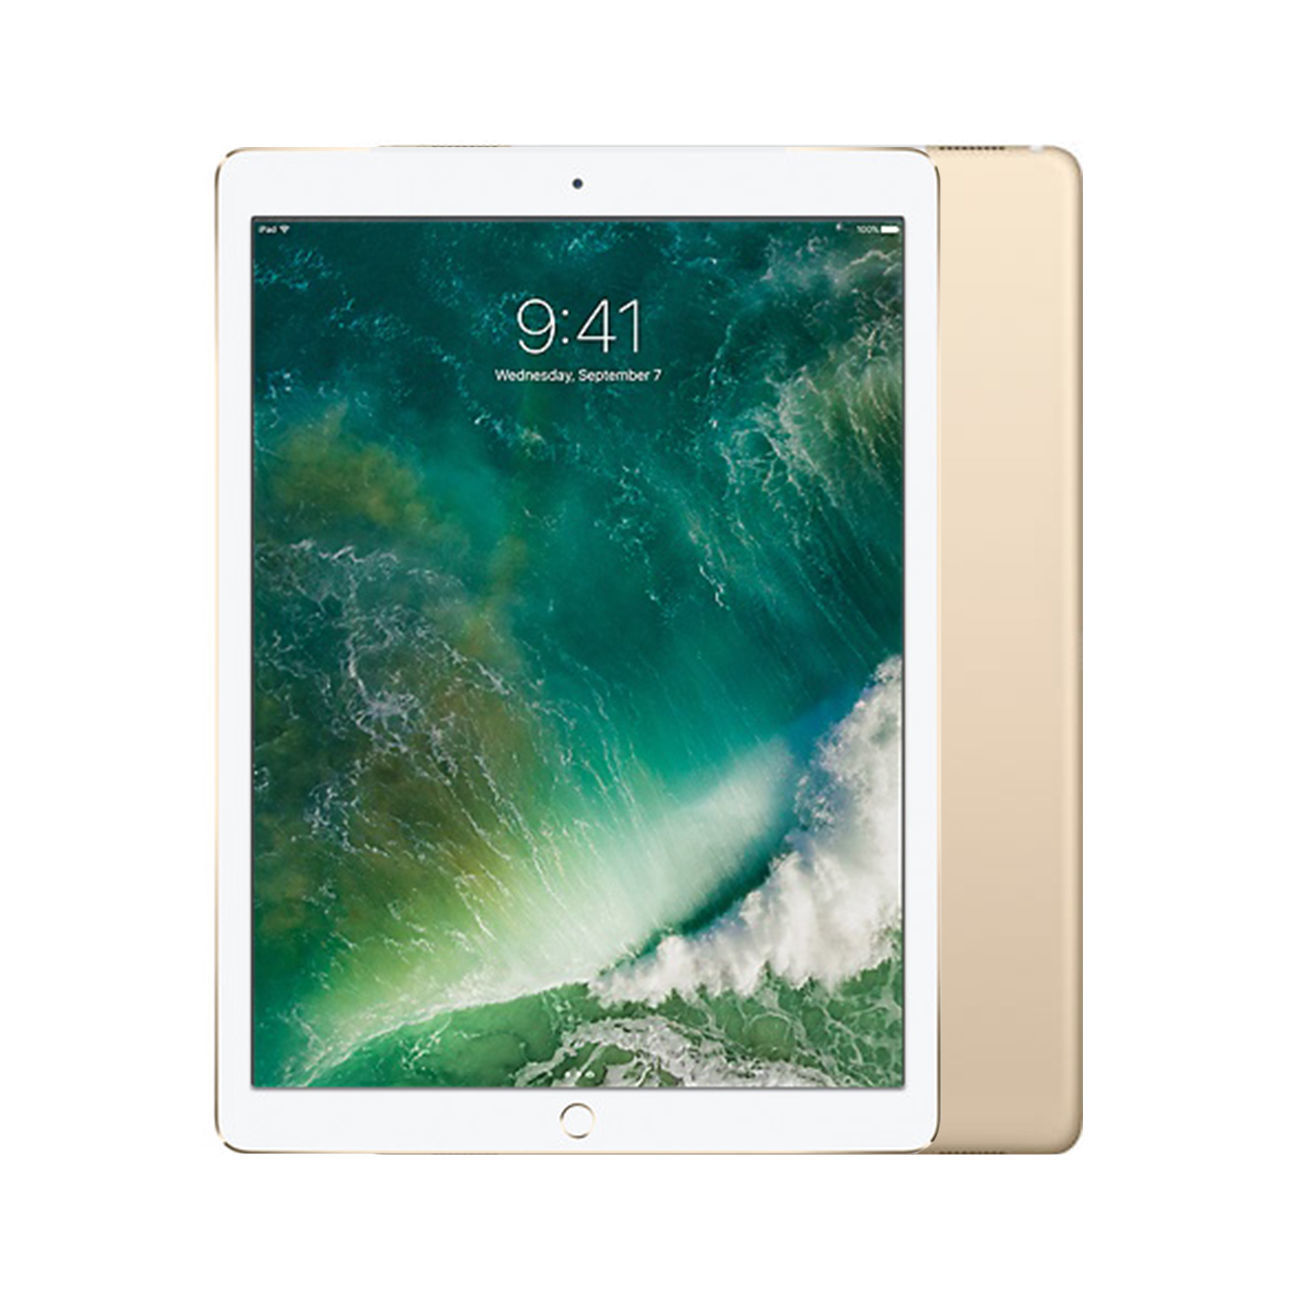 Apple iPad Pro 9.7 Wi-Fi + Cellular [32GB] [Gold] [Good] [12M]